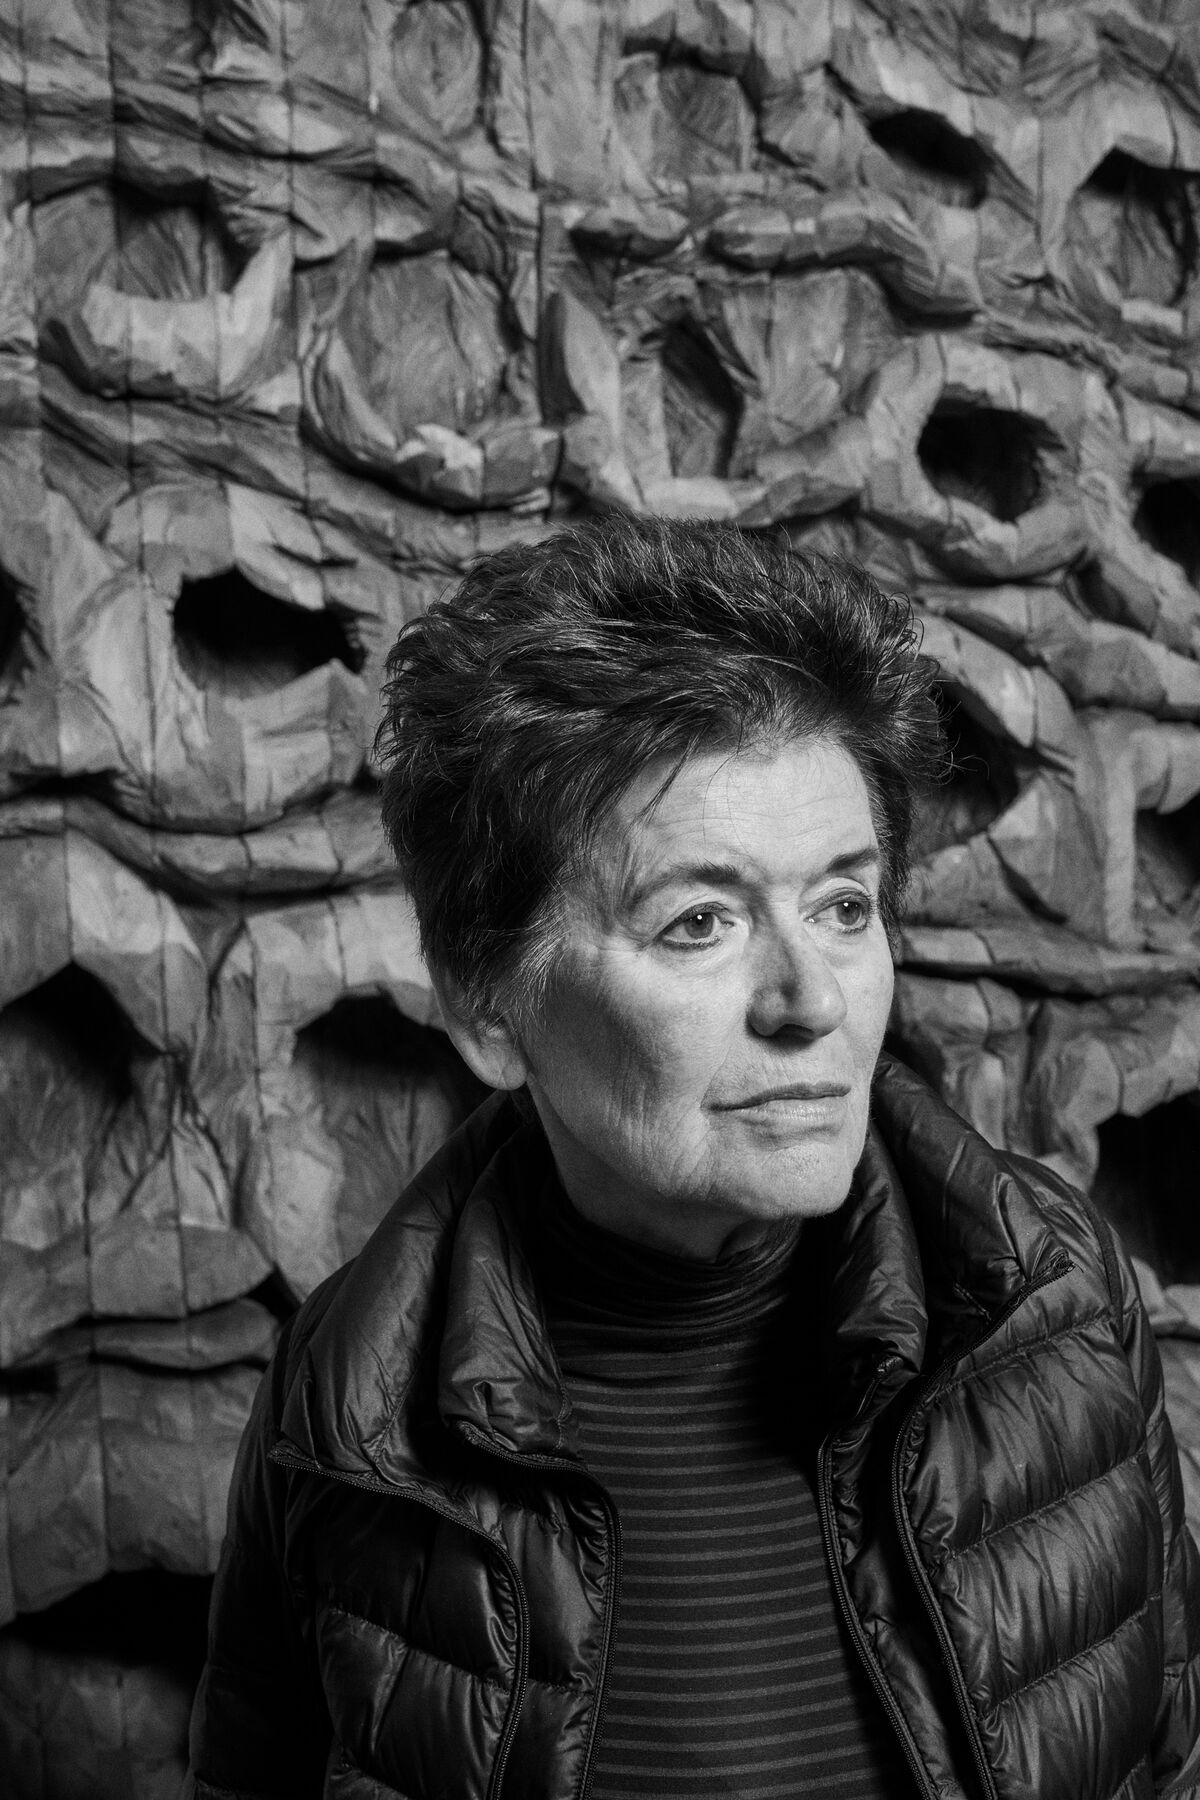 Portrait of Ursula von Rydingsvard by Alex John Beck for Artsy.